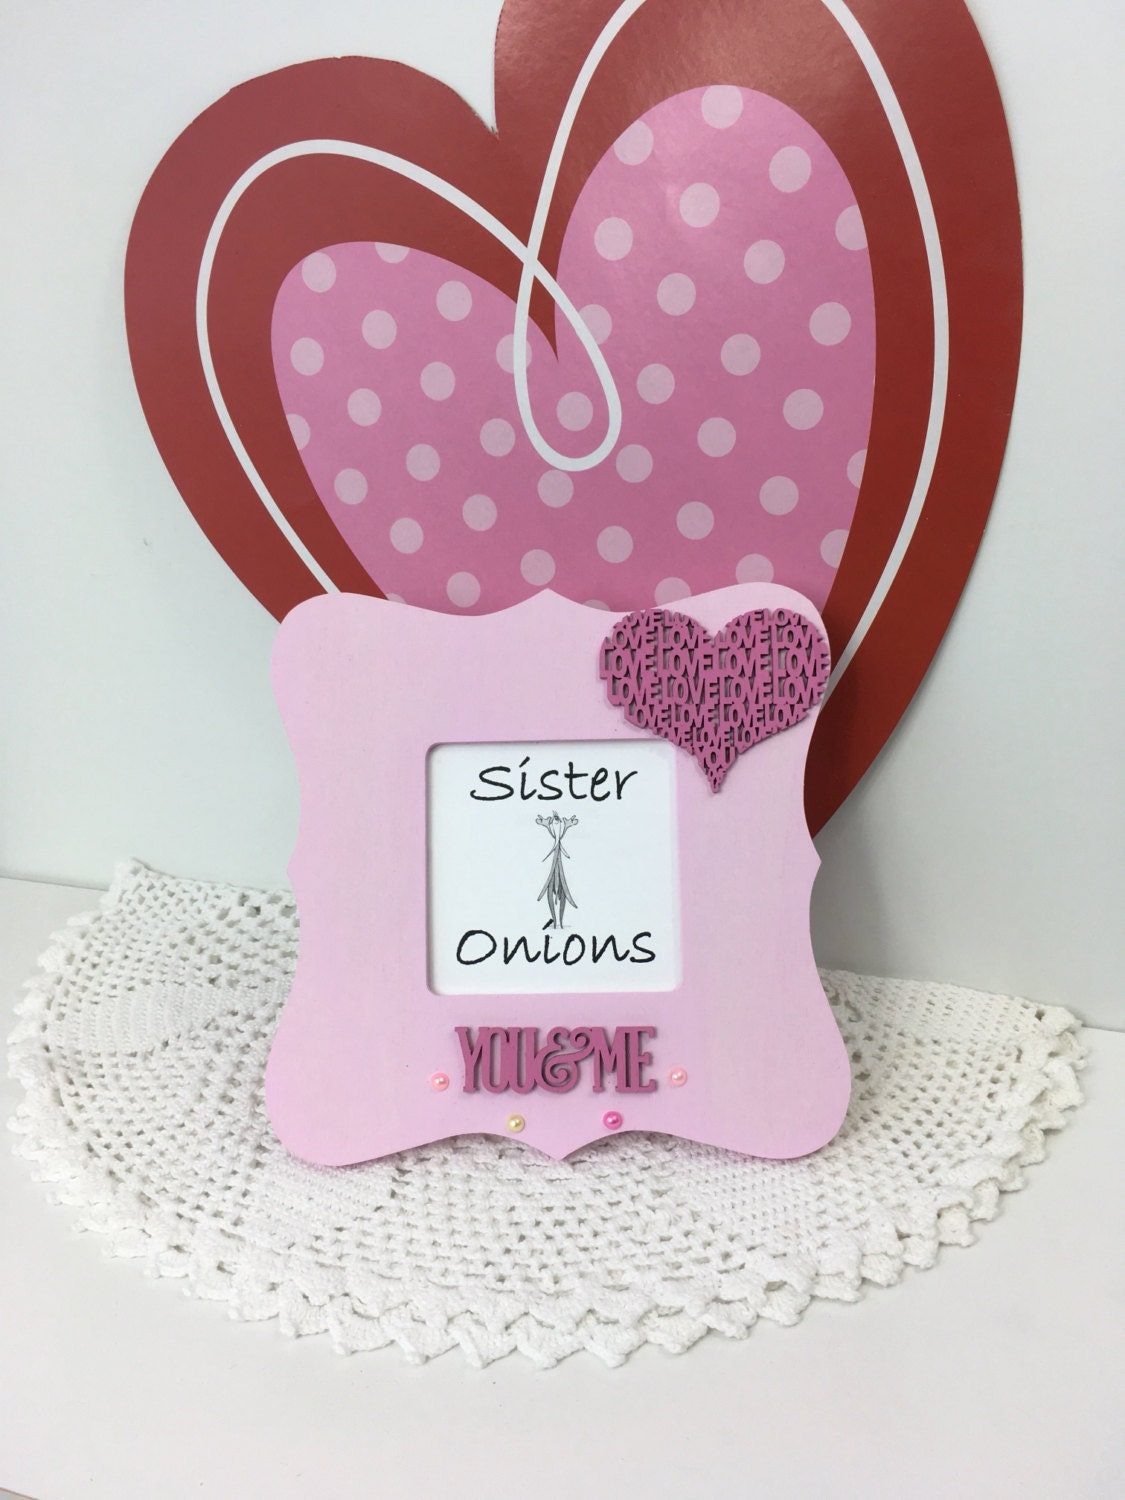 Embellished Pink Curvy Picture Frame You & Me 4-Ever 8 x 8